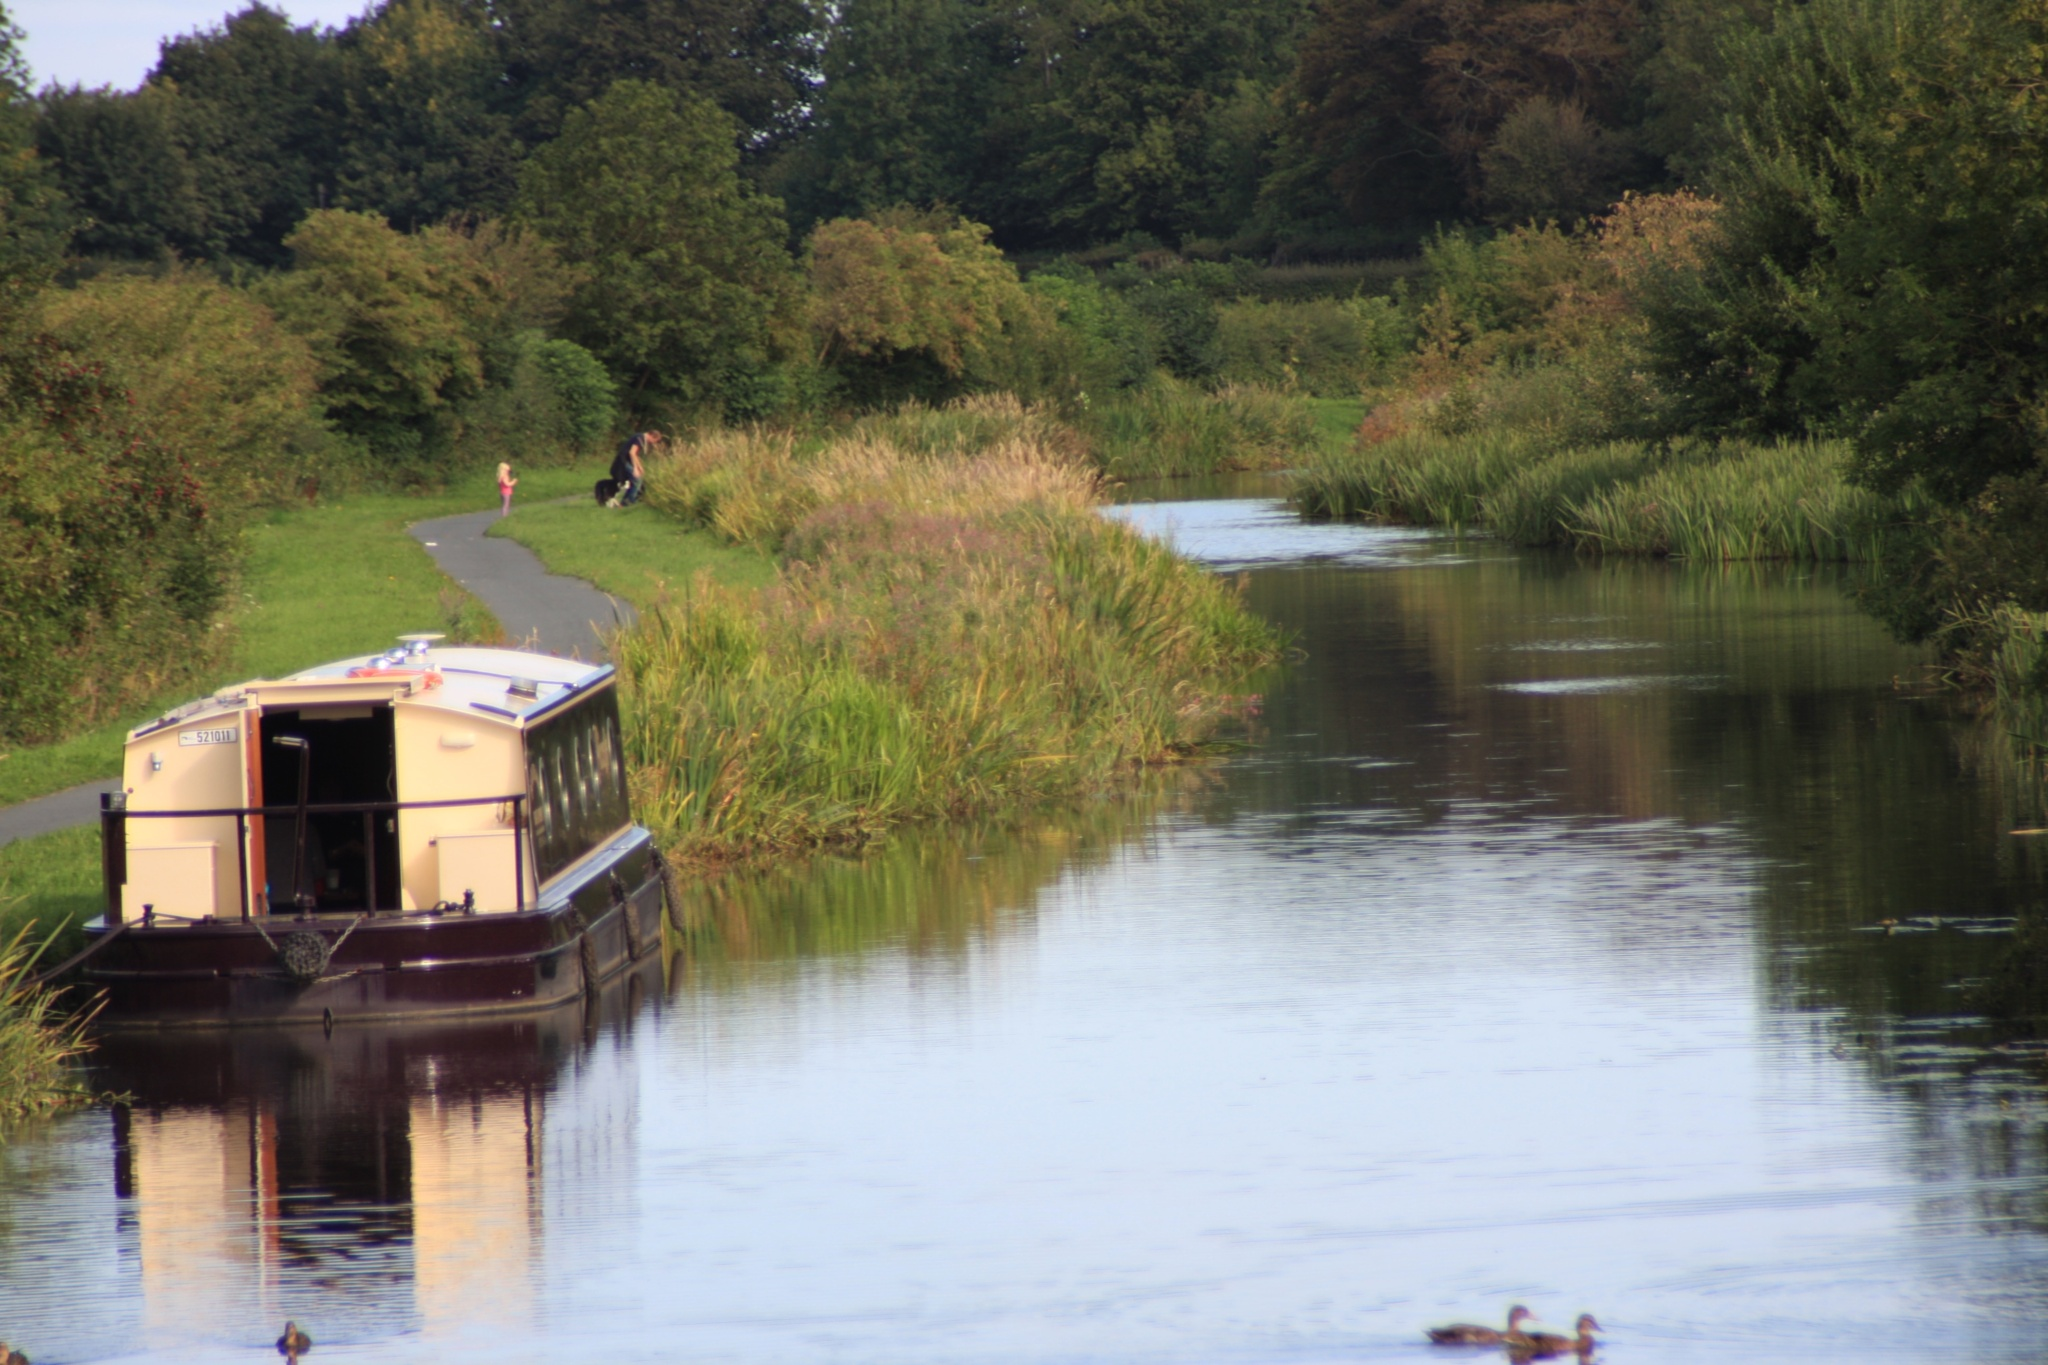 Busy morning on the Canal by Amanda Gardner